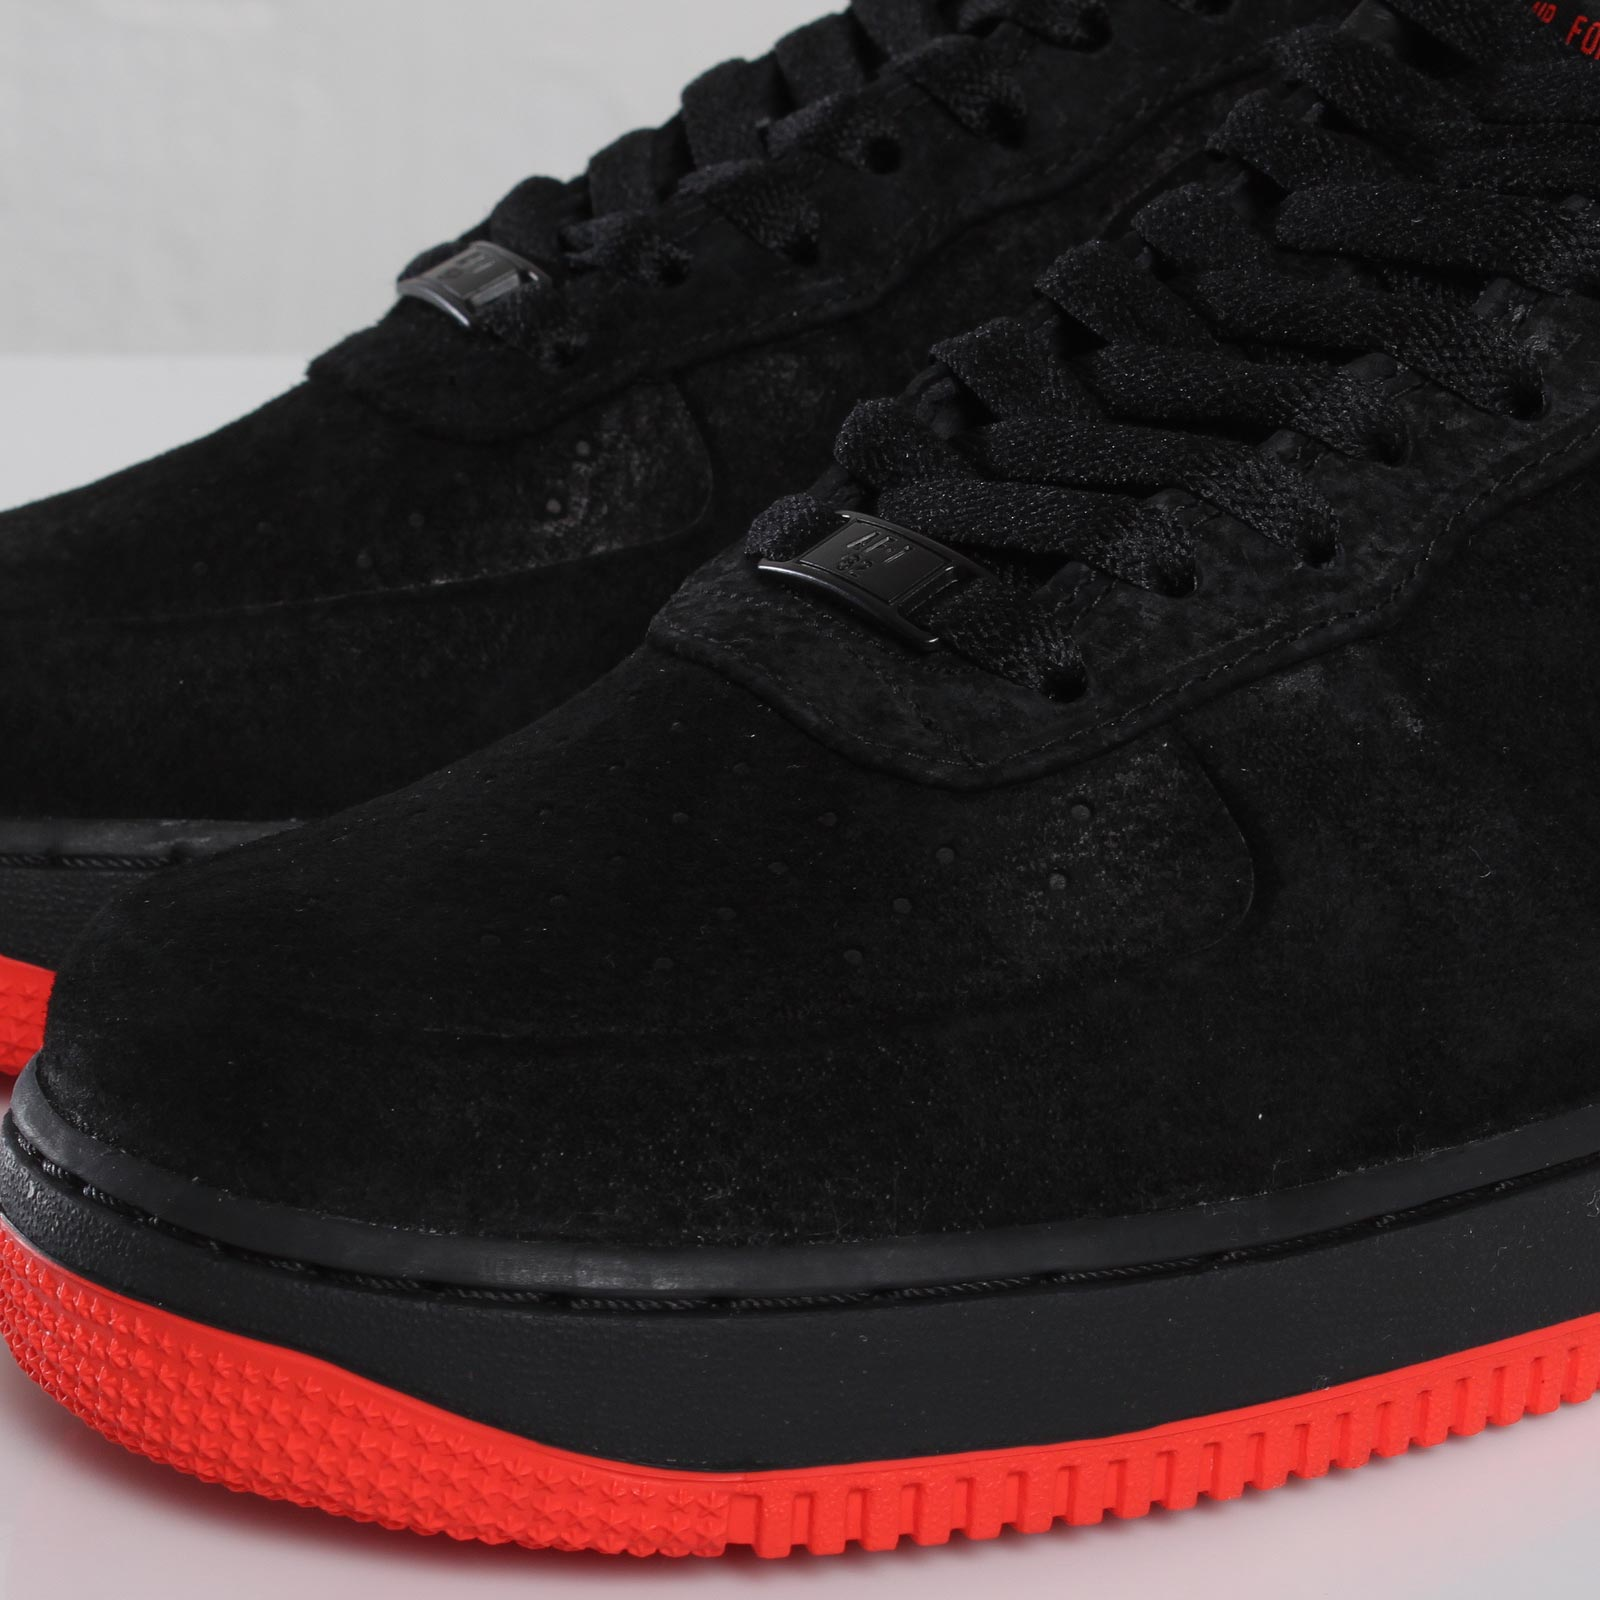 Nike Prm Suede 1 Force Black Orange Czech 16e58 Air Vt F1ea8 Low pUMVqSz